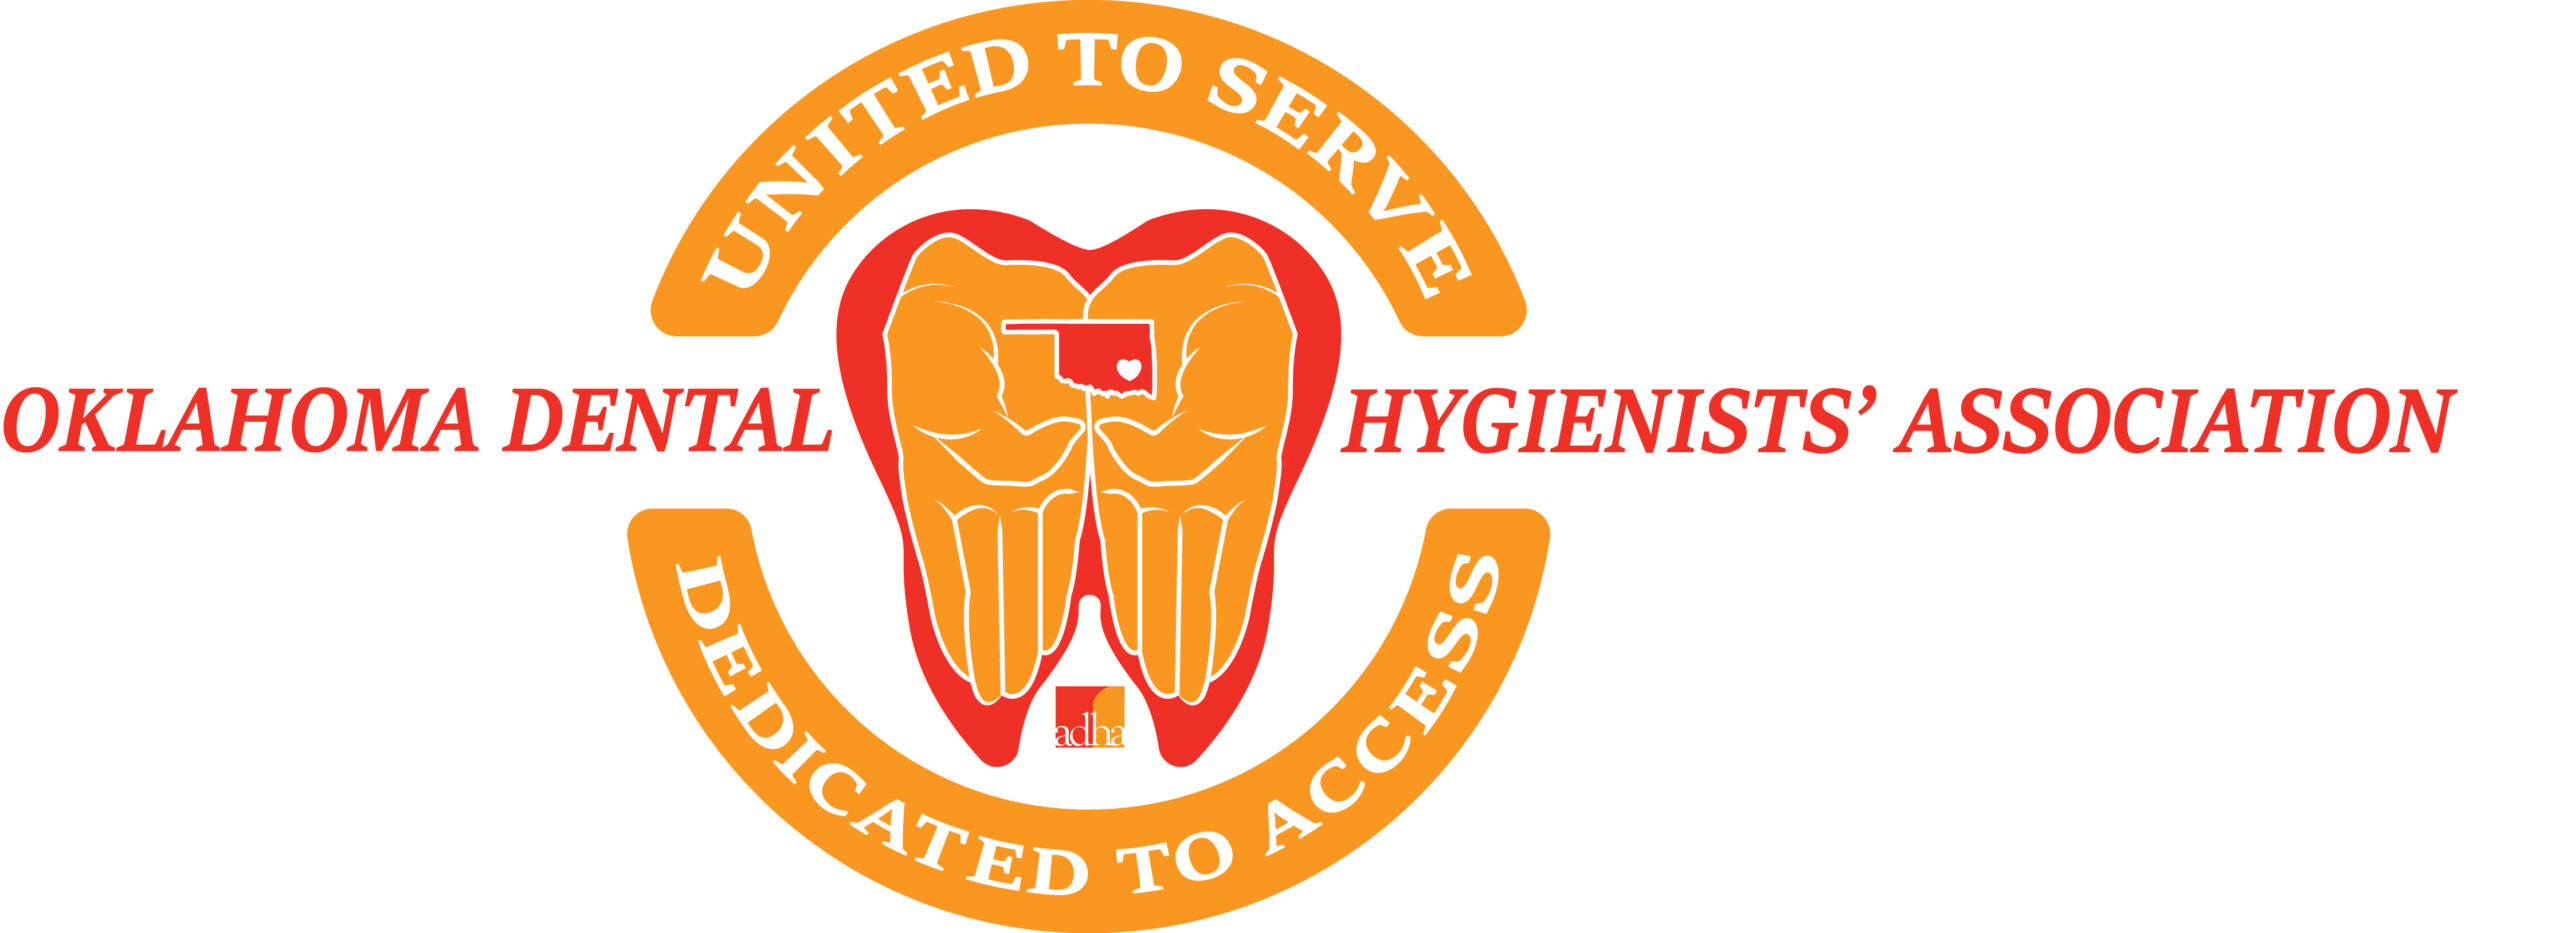 Oklahoma Dental Hygienists' Association